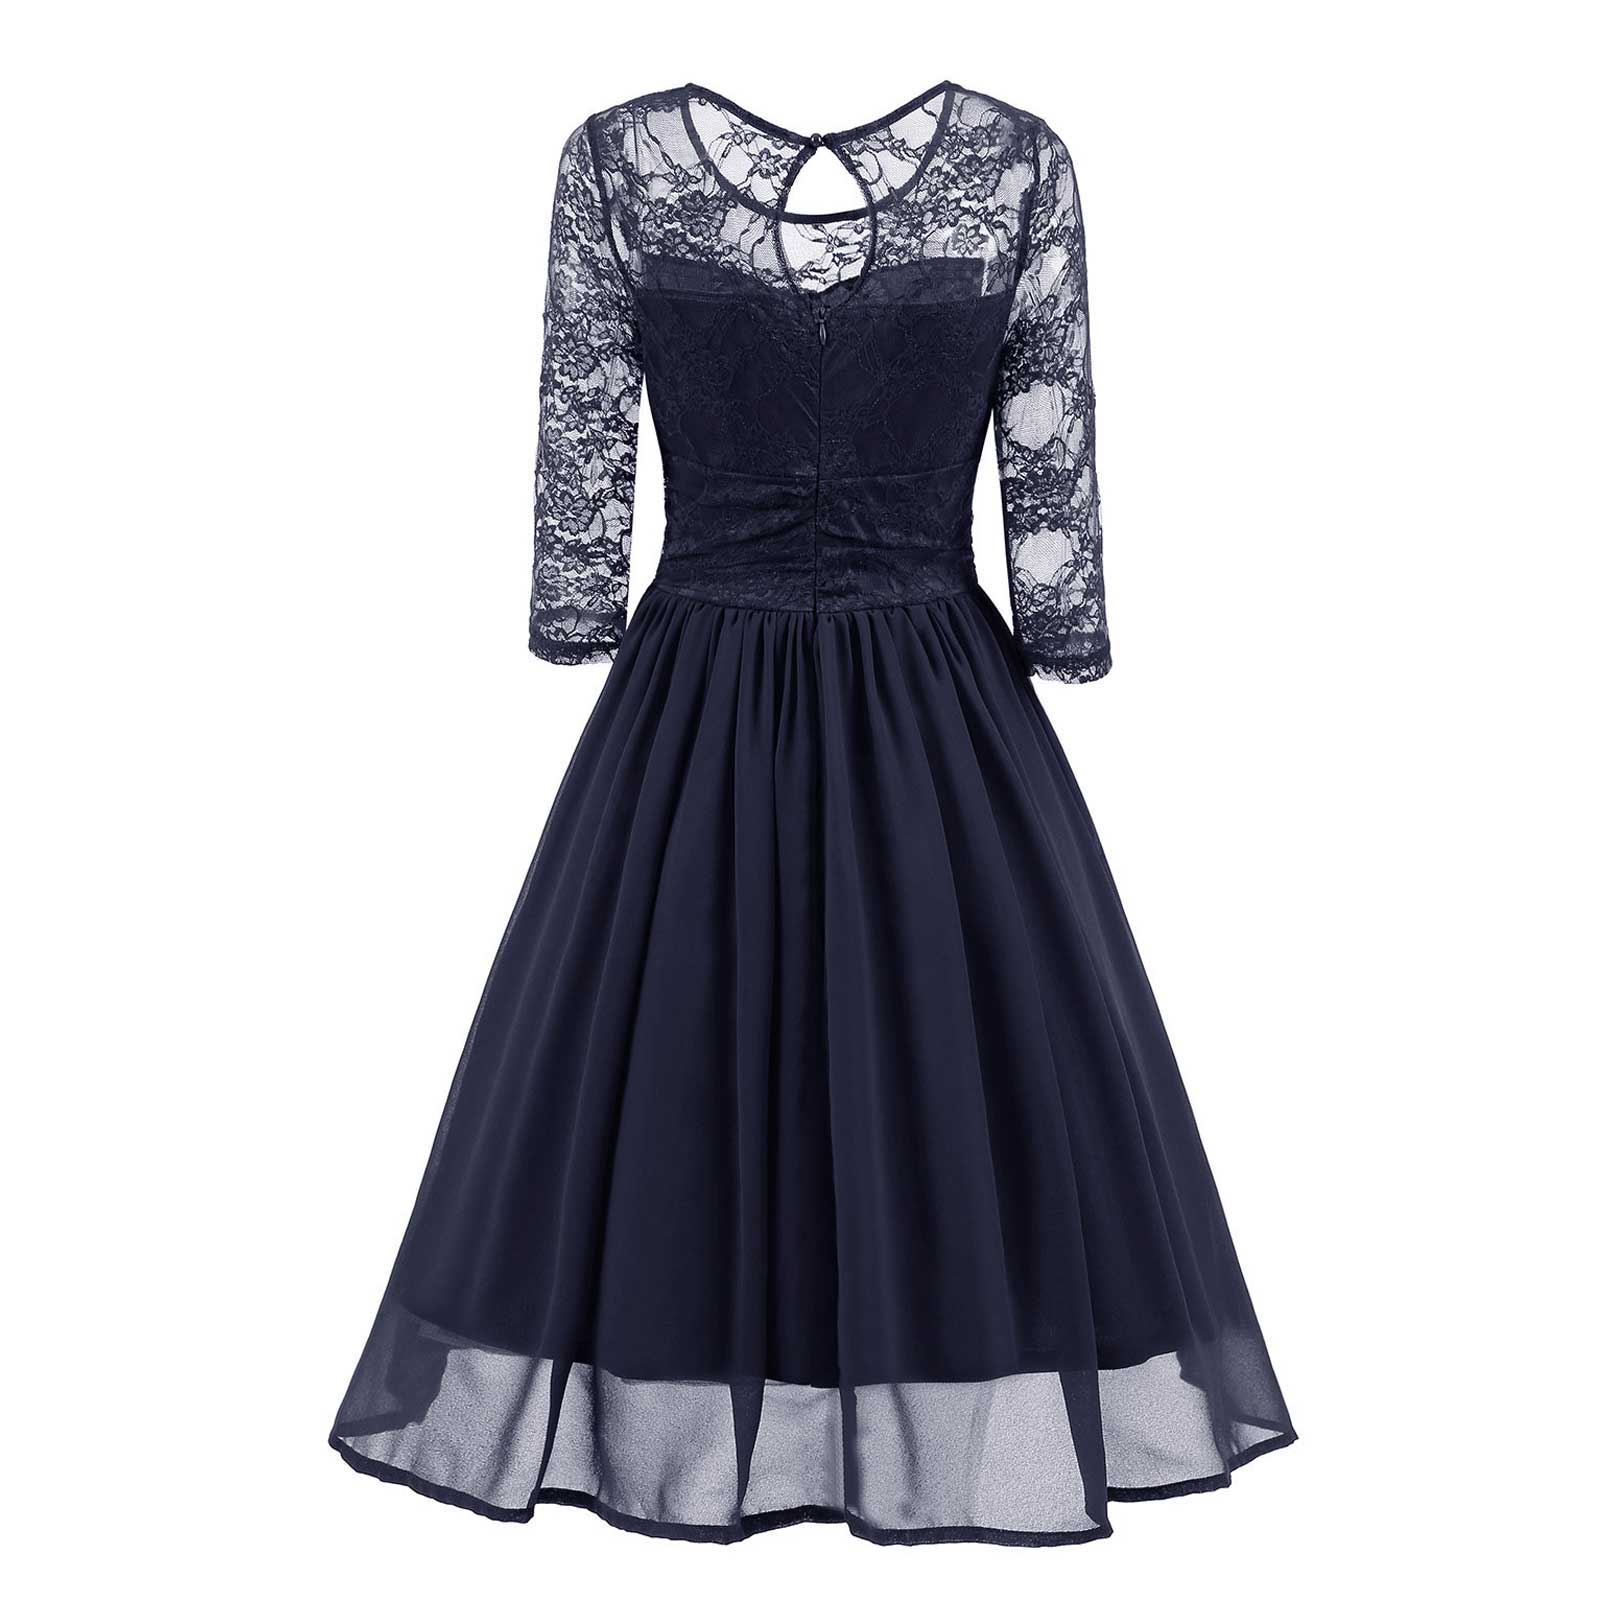 Classic Retro Chiffon Fit and Flare Party Cocktail Formal Evening A ...